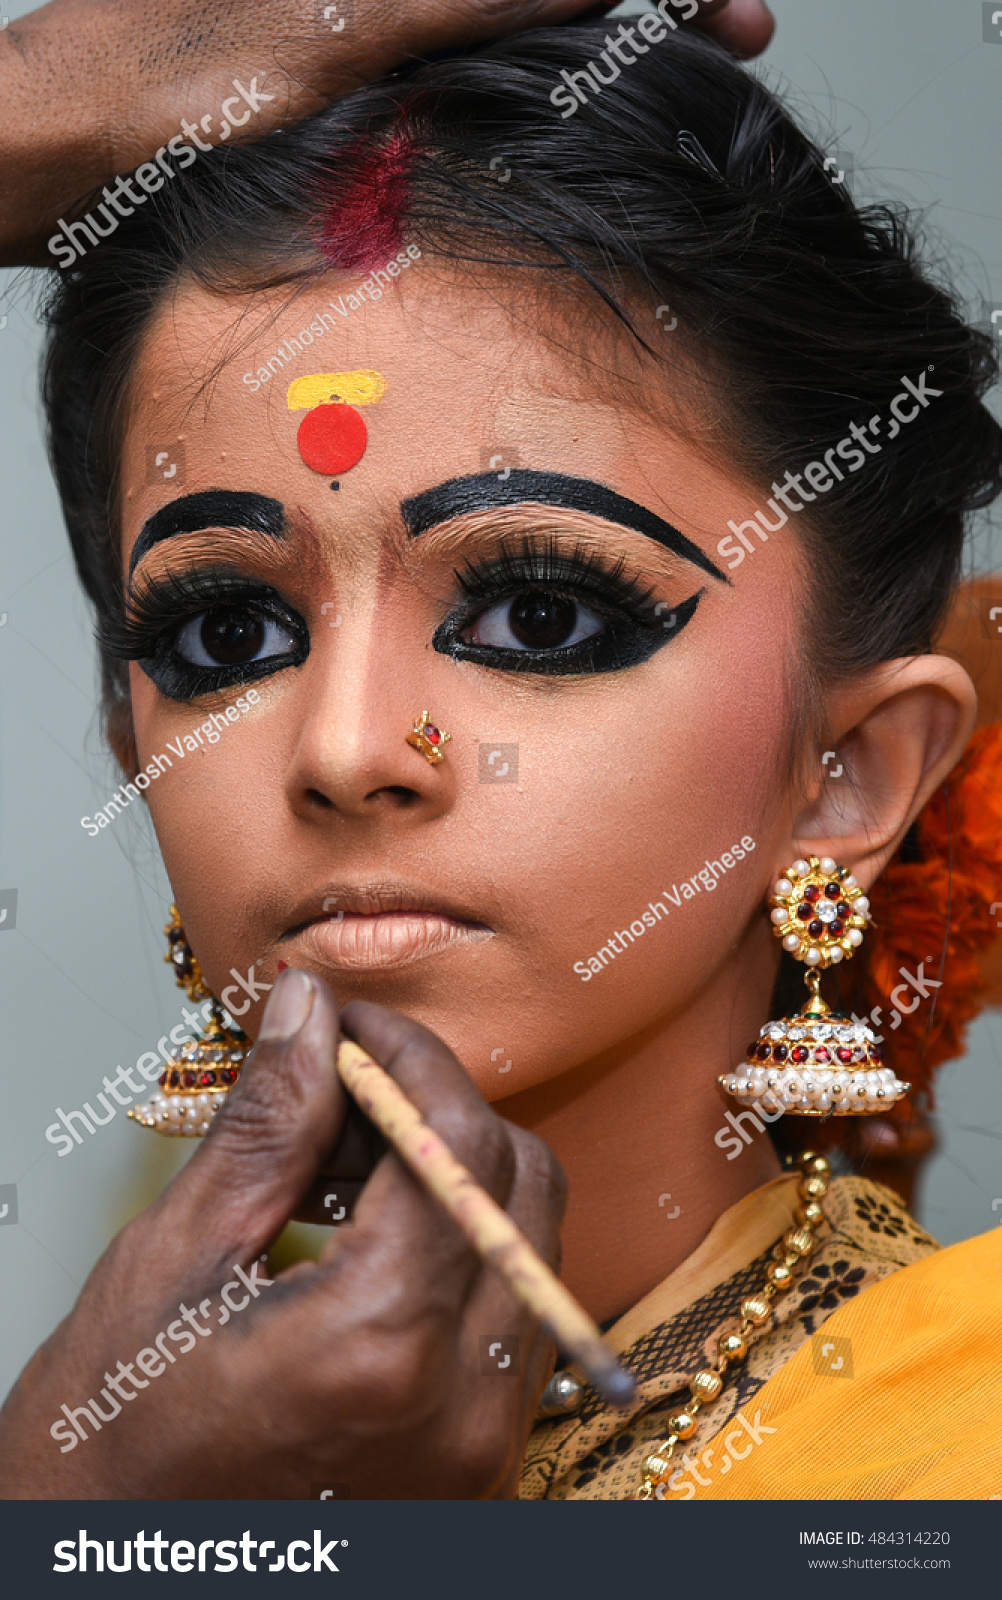 Makeup artist applies lipstick for beautiful young Indian girl/woman/kid/child wearing